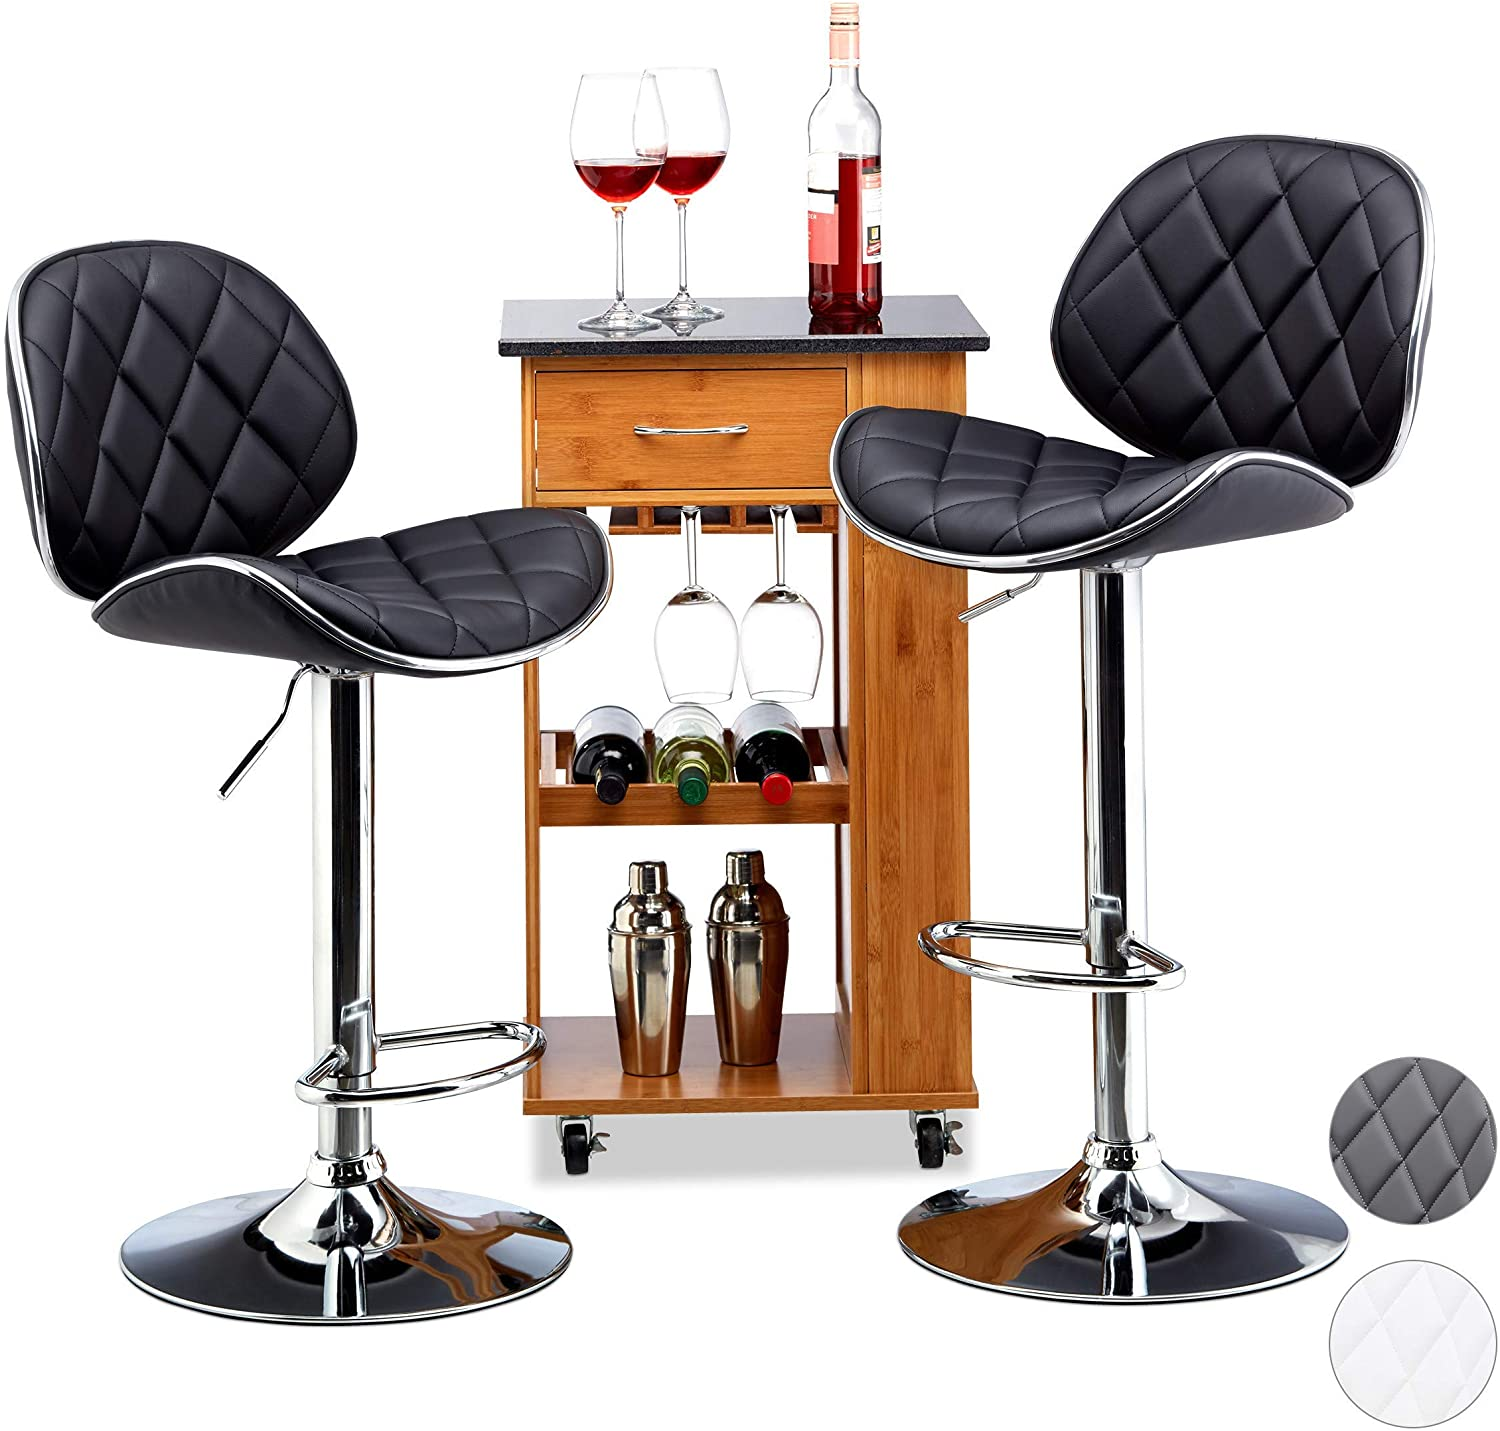 Relaxdays Bar Bombing free shipping Stool Set of Swivel specialty shop Backres Height-Adjustable 2